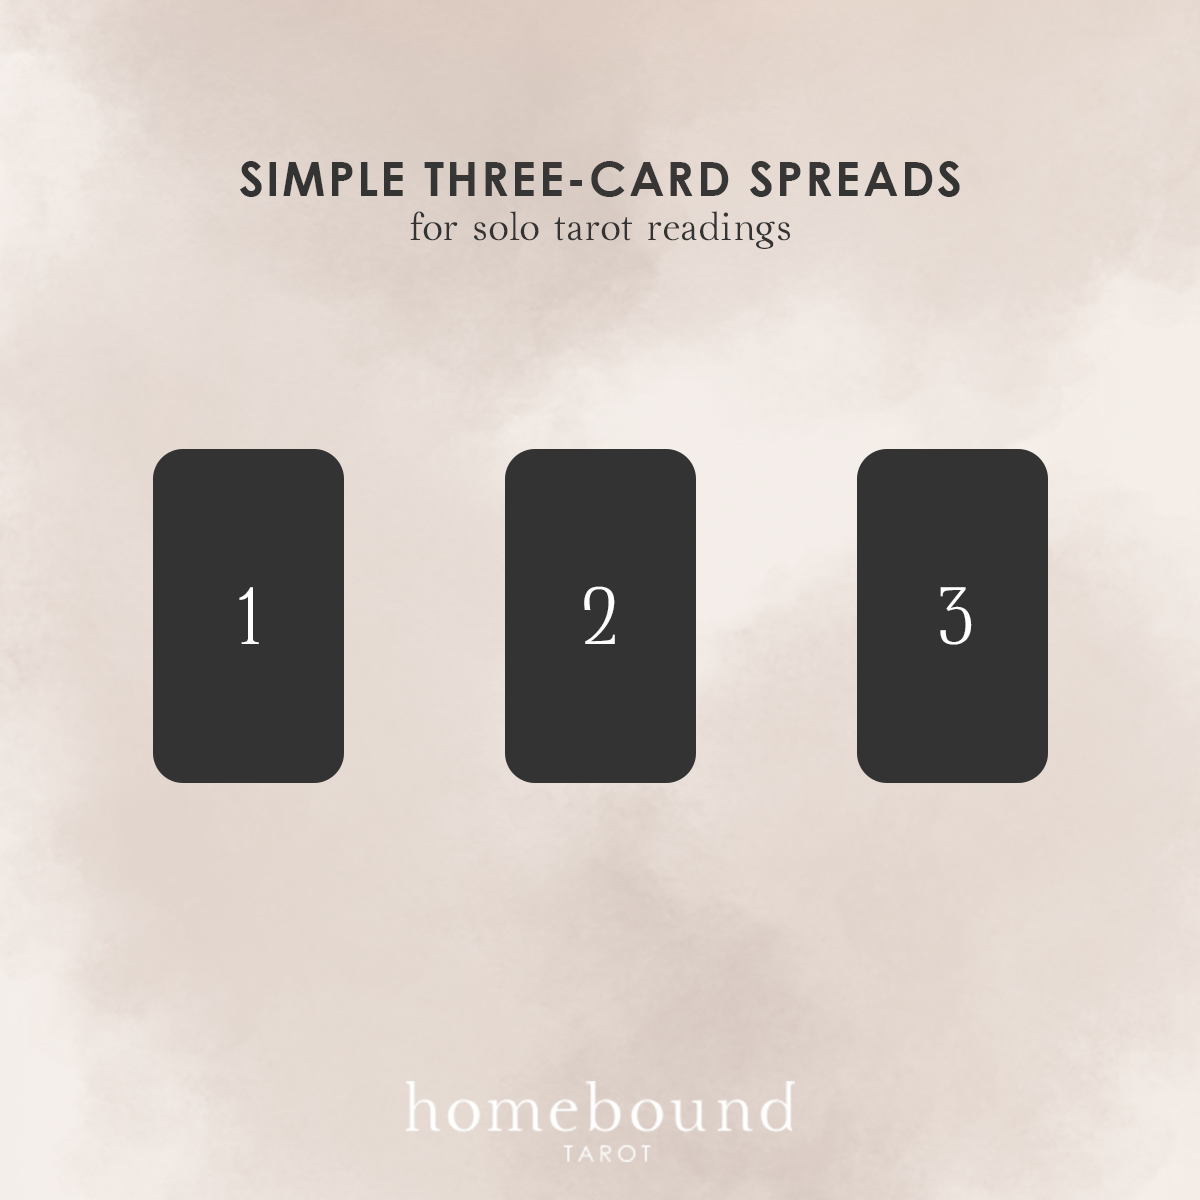 Simple Three-Card Spreads for Solo Tarot Readings